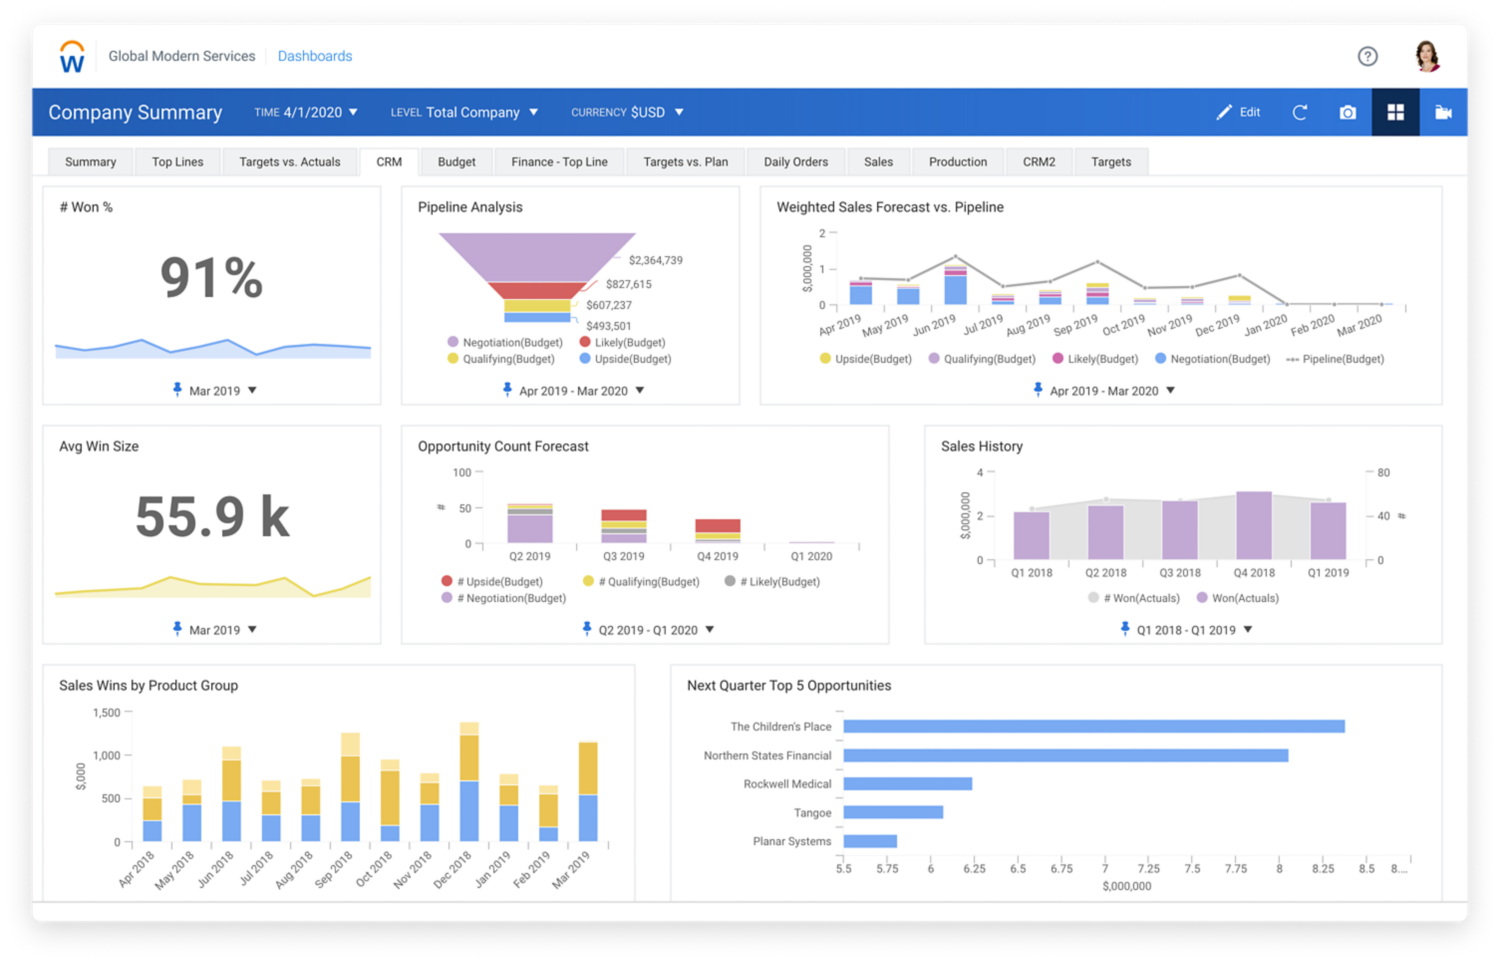 CRM dashboard showing graphs for pipeline analysis, opportunity count forecast, sales history, and sales wins.